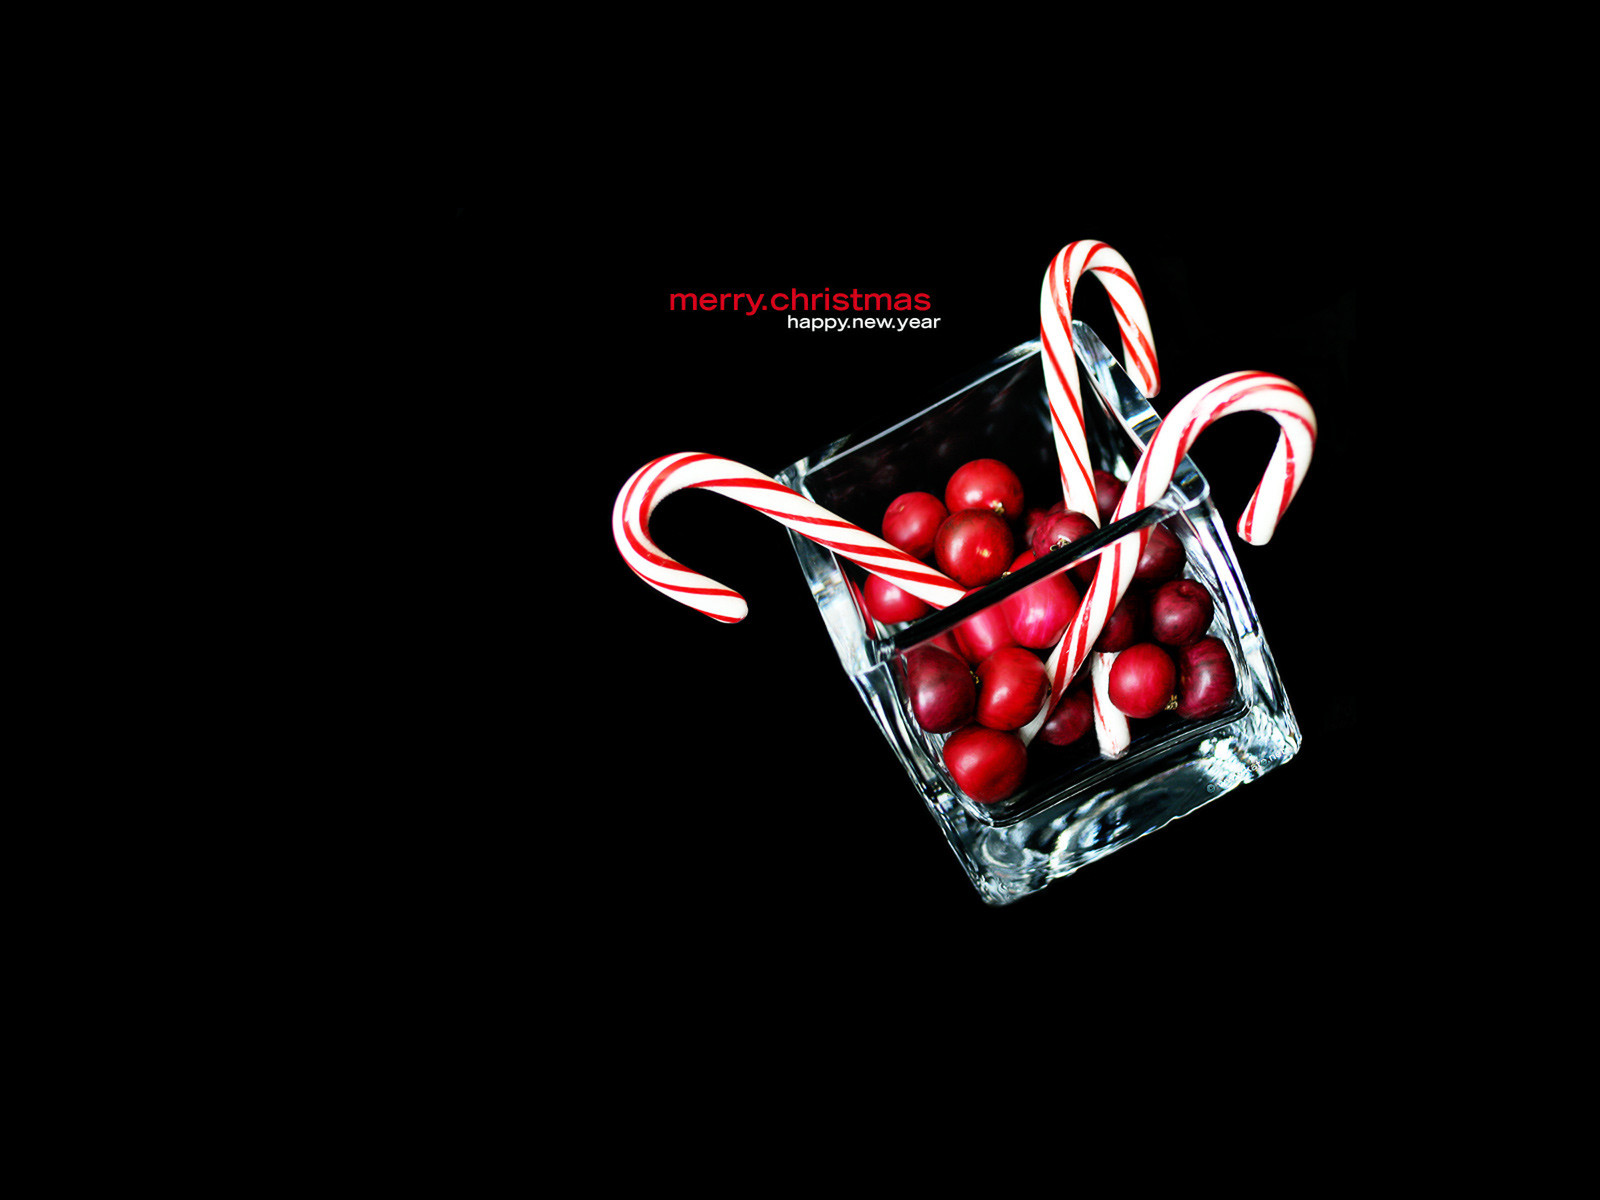 Christmas Candy Cane Background  Christmas Candy Cane Wallpapers [HD]